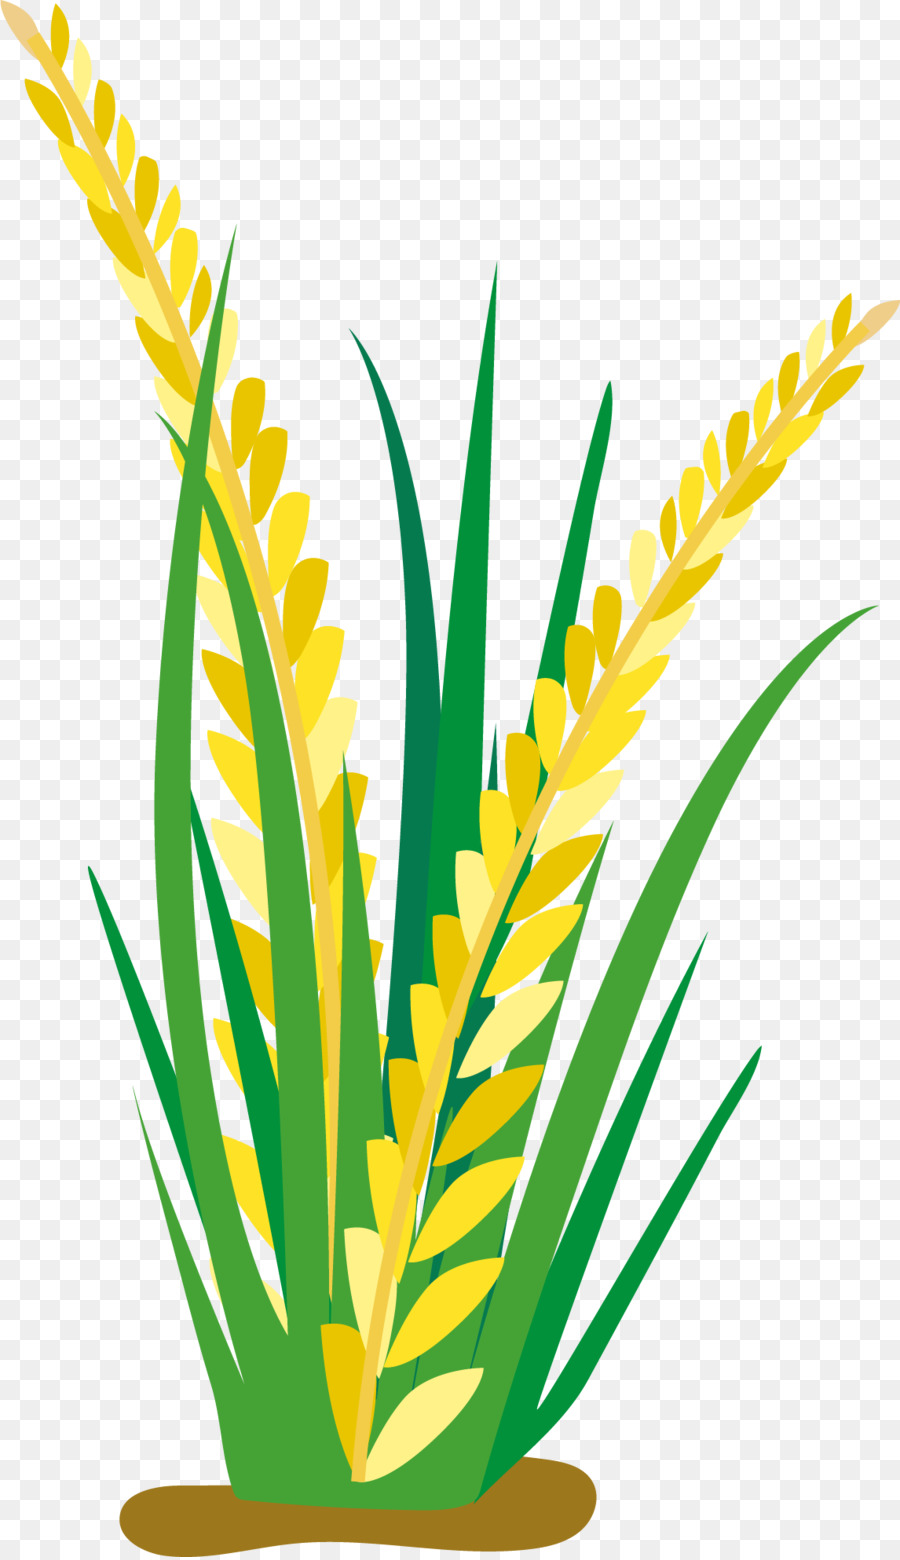 Cereal clipart rice plant. Cartoon oat clip art